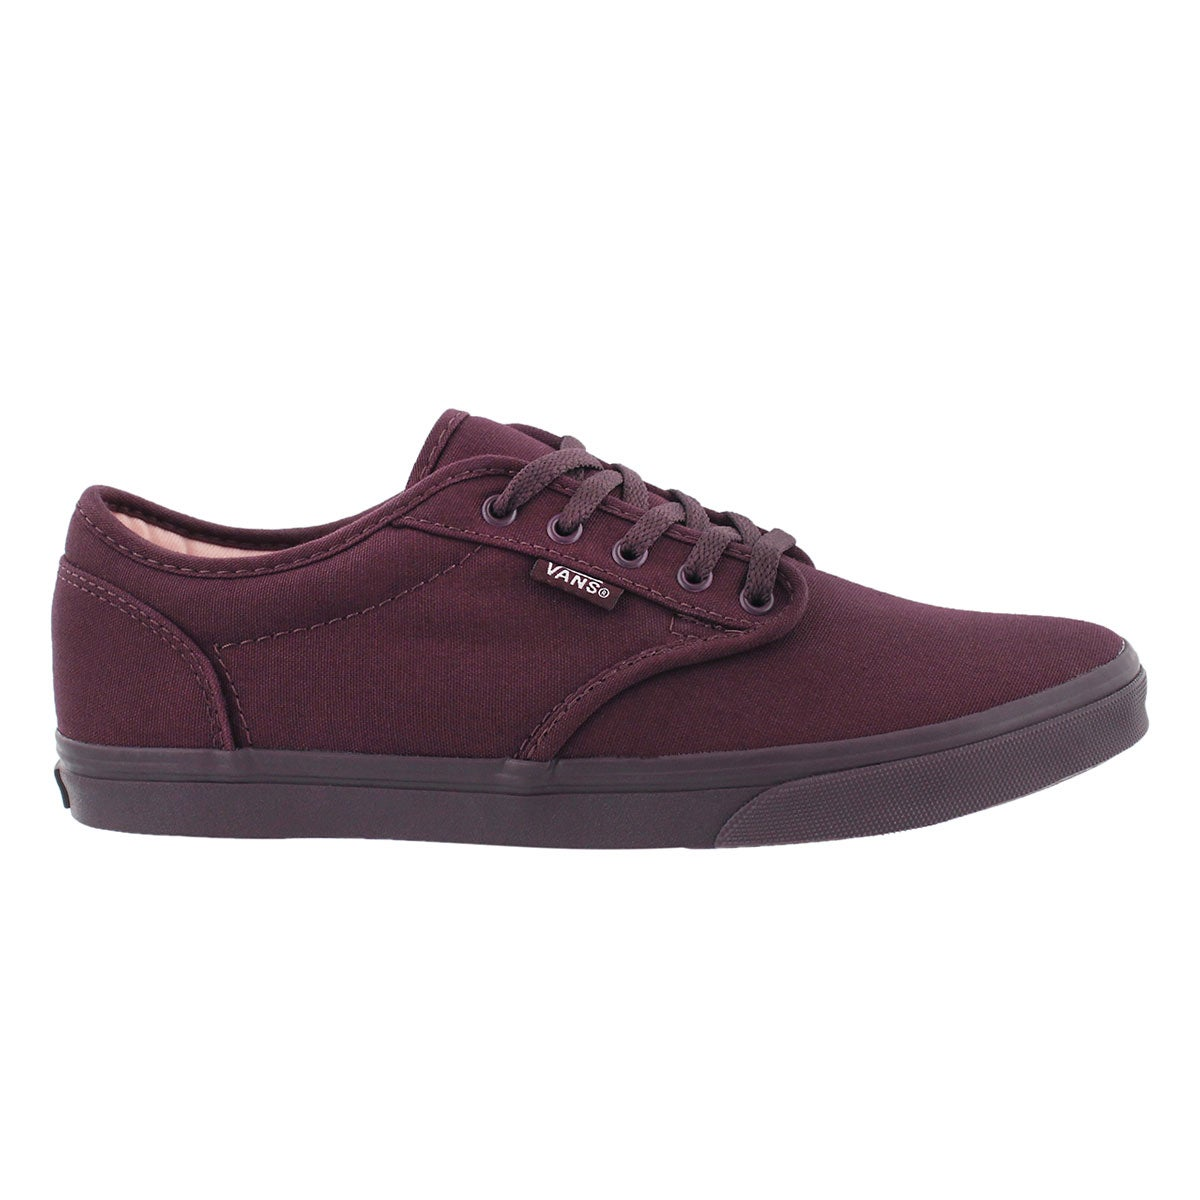 Lds Atwood Low fig lace up sneaker